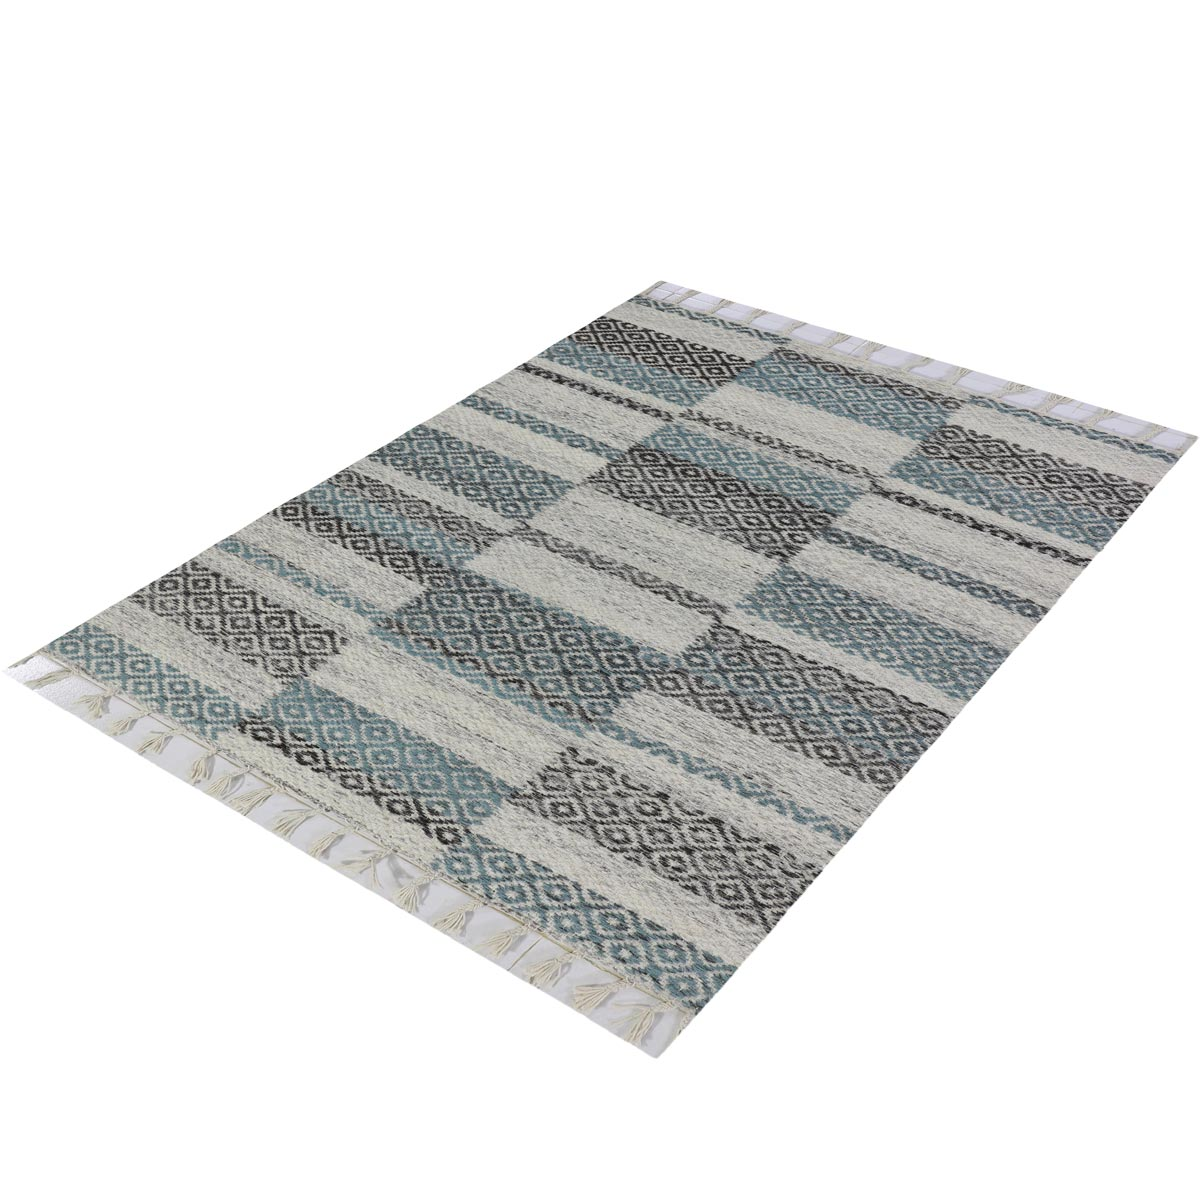 Tangier Rug 10 Grey/Blue 3